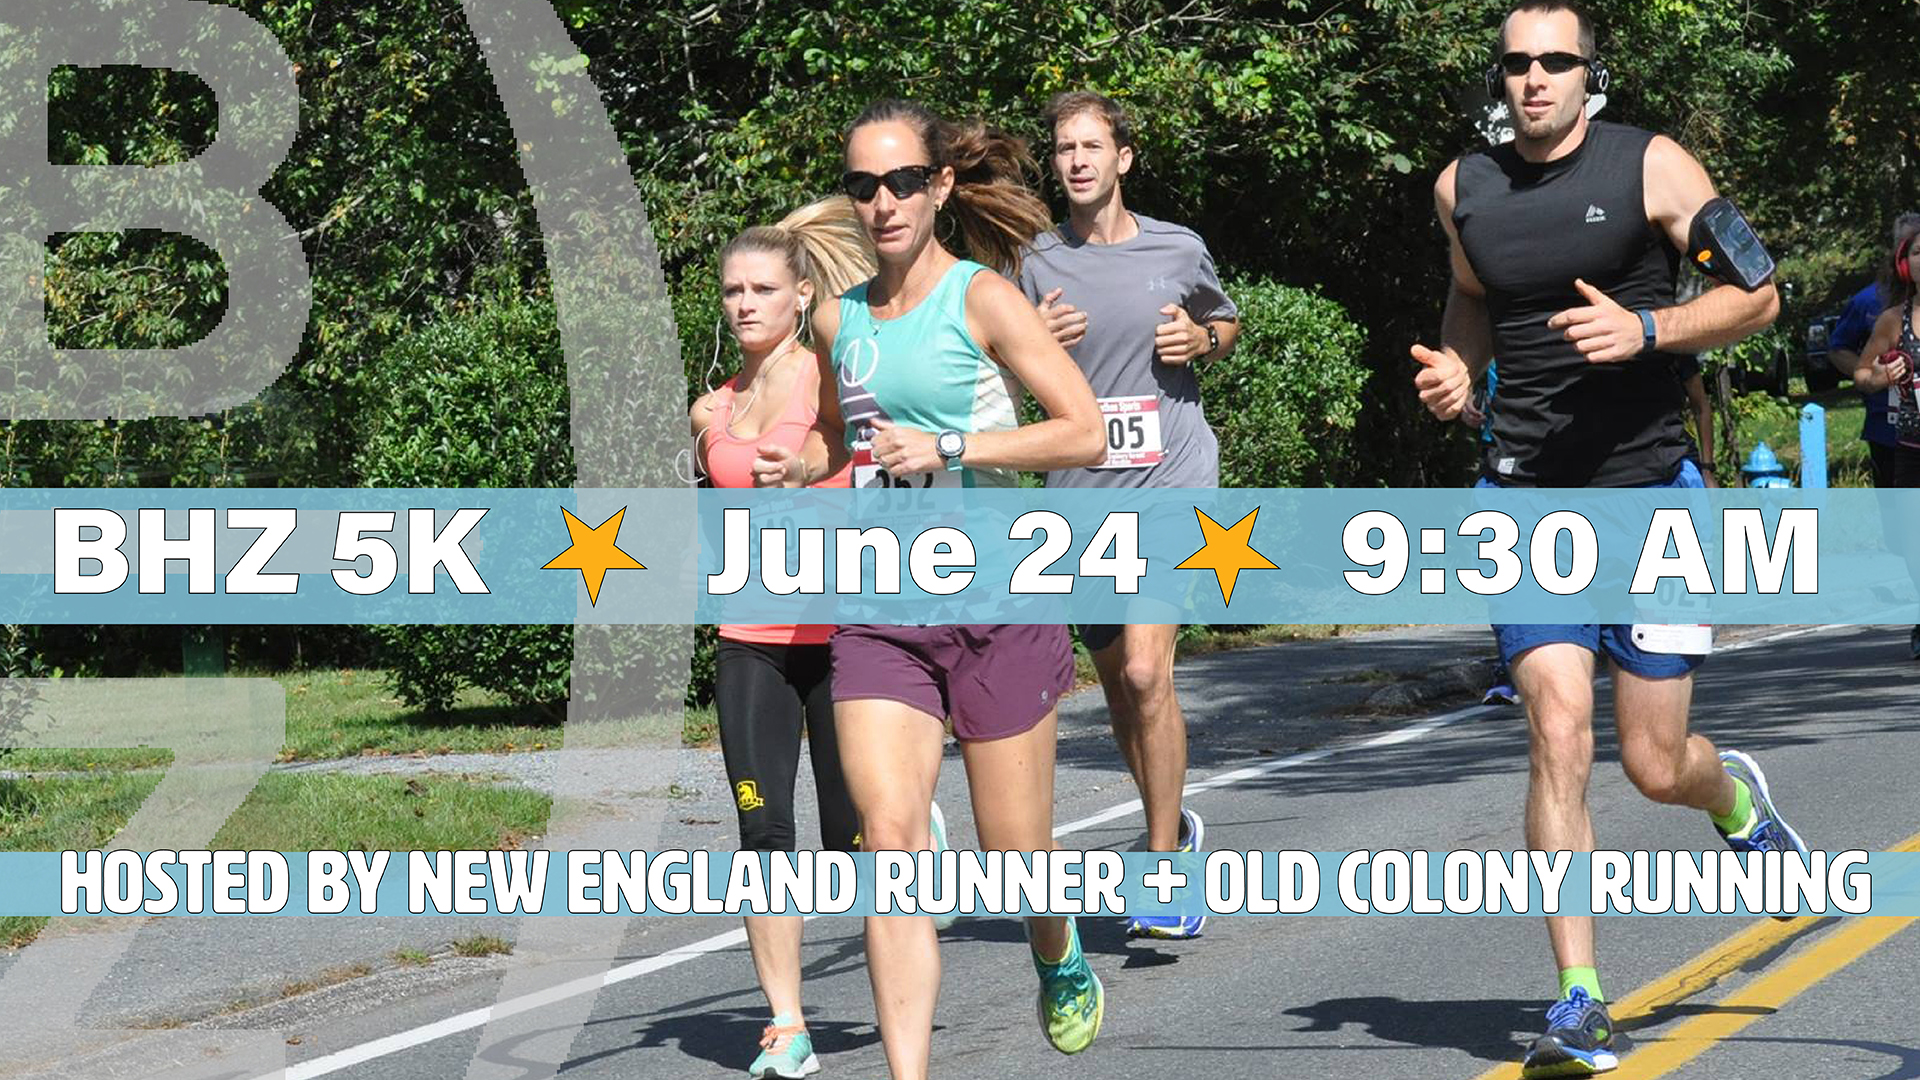 BHZ SUMMER 5K:SUNDAY 6/24 — 9:30AM START    A FUN RACE FOR THE ENTIRE FAMILY! HOPE YOU CAN JOIN US!   Get summer off to a great start!  register here: https://bhz5k.com/   The BHZ 5K features a fast, fairly flat course which starts and finishes at BHZ. It's an out and back route with a loop at the midpoint. The top three overall male/female will receive a custom BHZ tap handle trophy. Unique age group awards in seven different age divisions.  The post-race celebration includes complimentary (age 21+) BHZ craft beer plus bagels & fruit. T-shirts to the first 200 registrants.   LIVE MUSIC  The Joneses 10:30-12:30PM Brooke & Brian 1-3:00PM